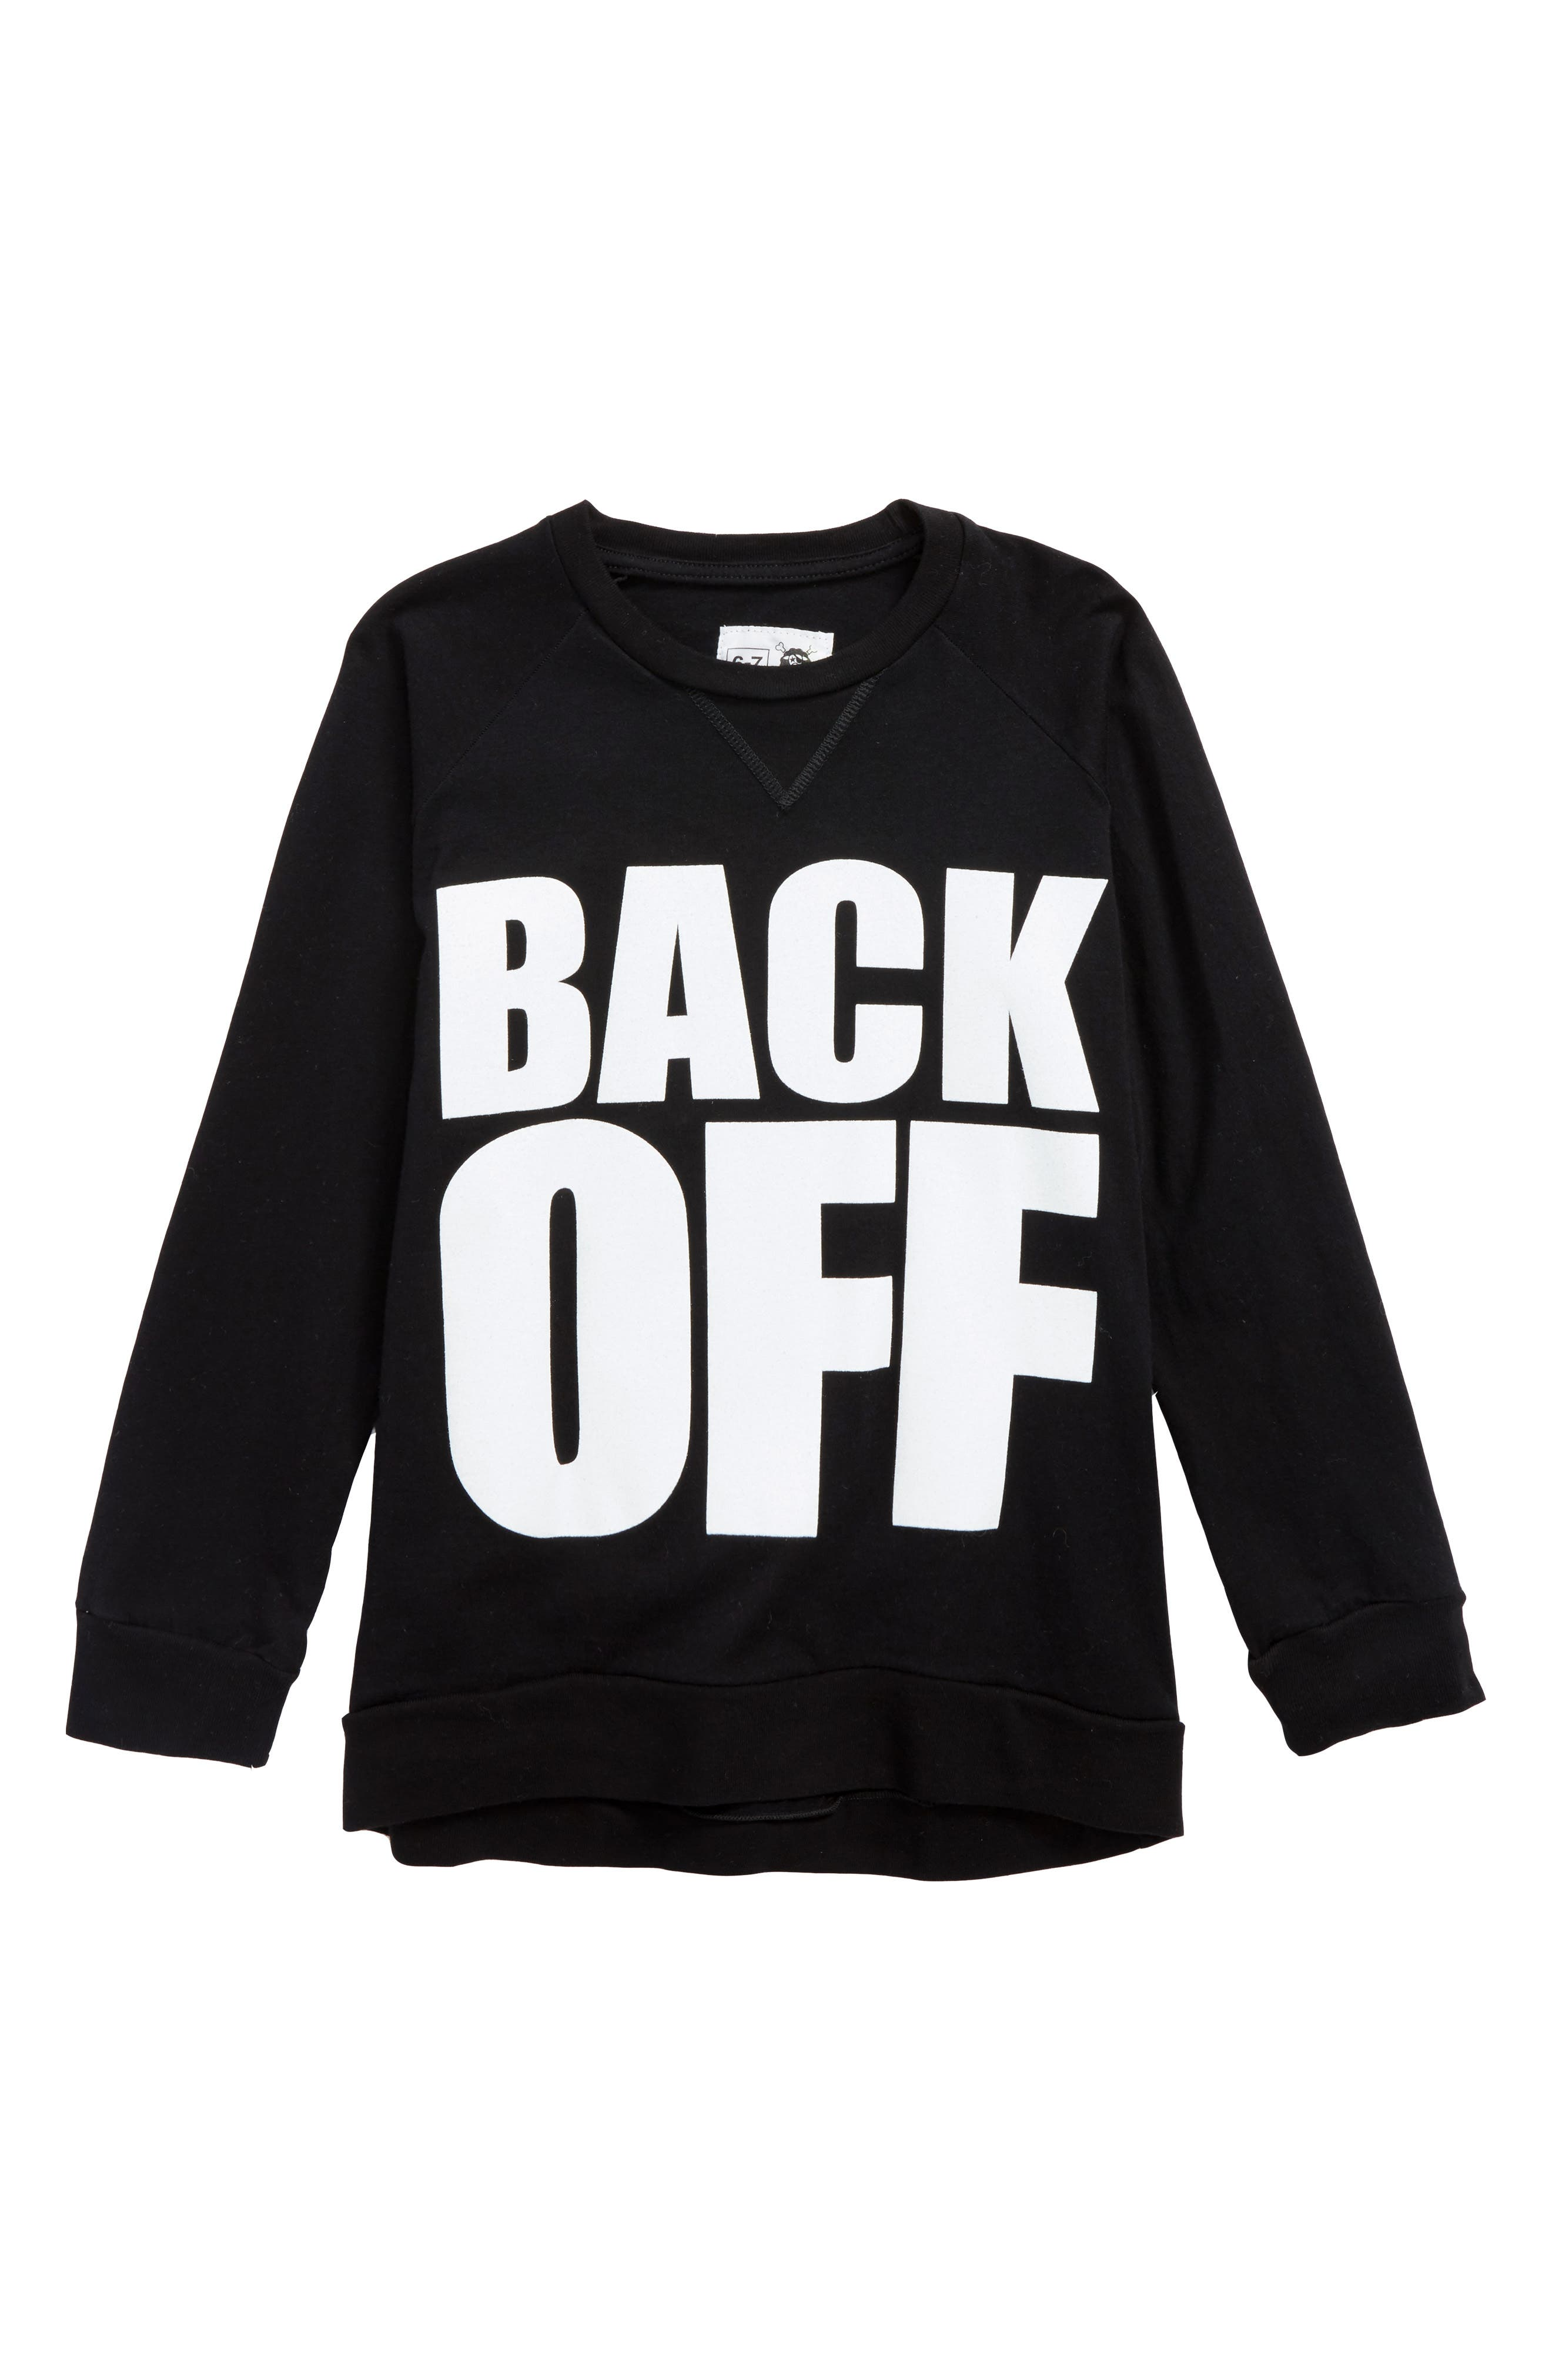 Back Off Graphic T-Shirt,                             Main thumbnail 1, color,                             001